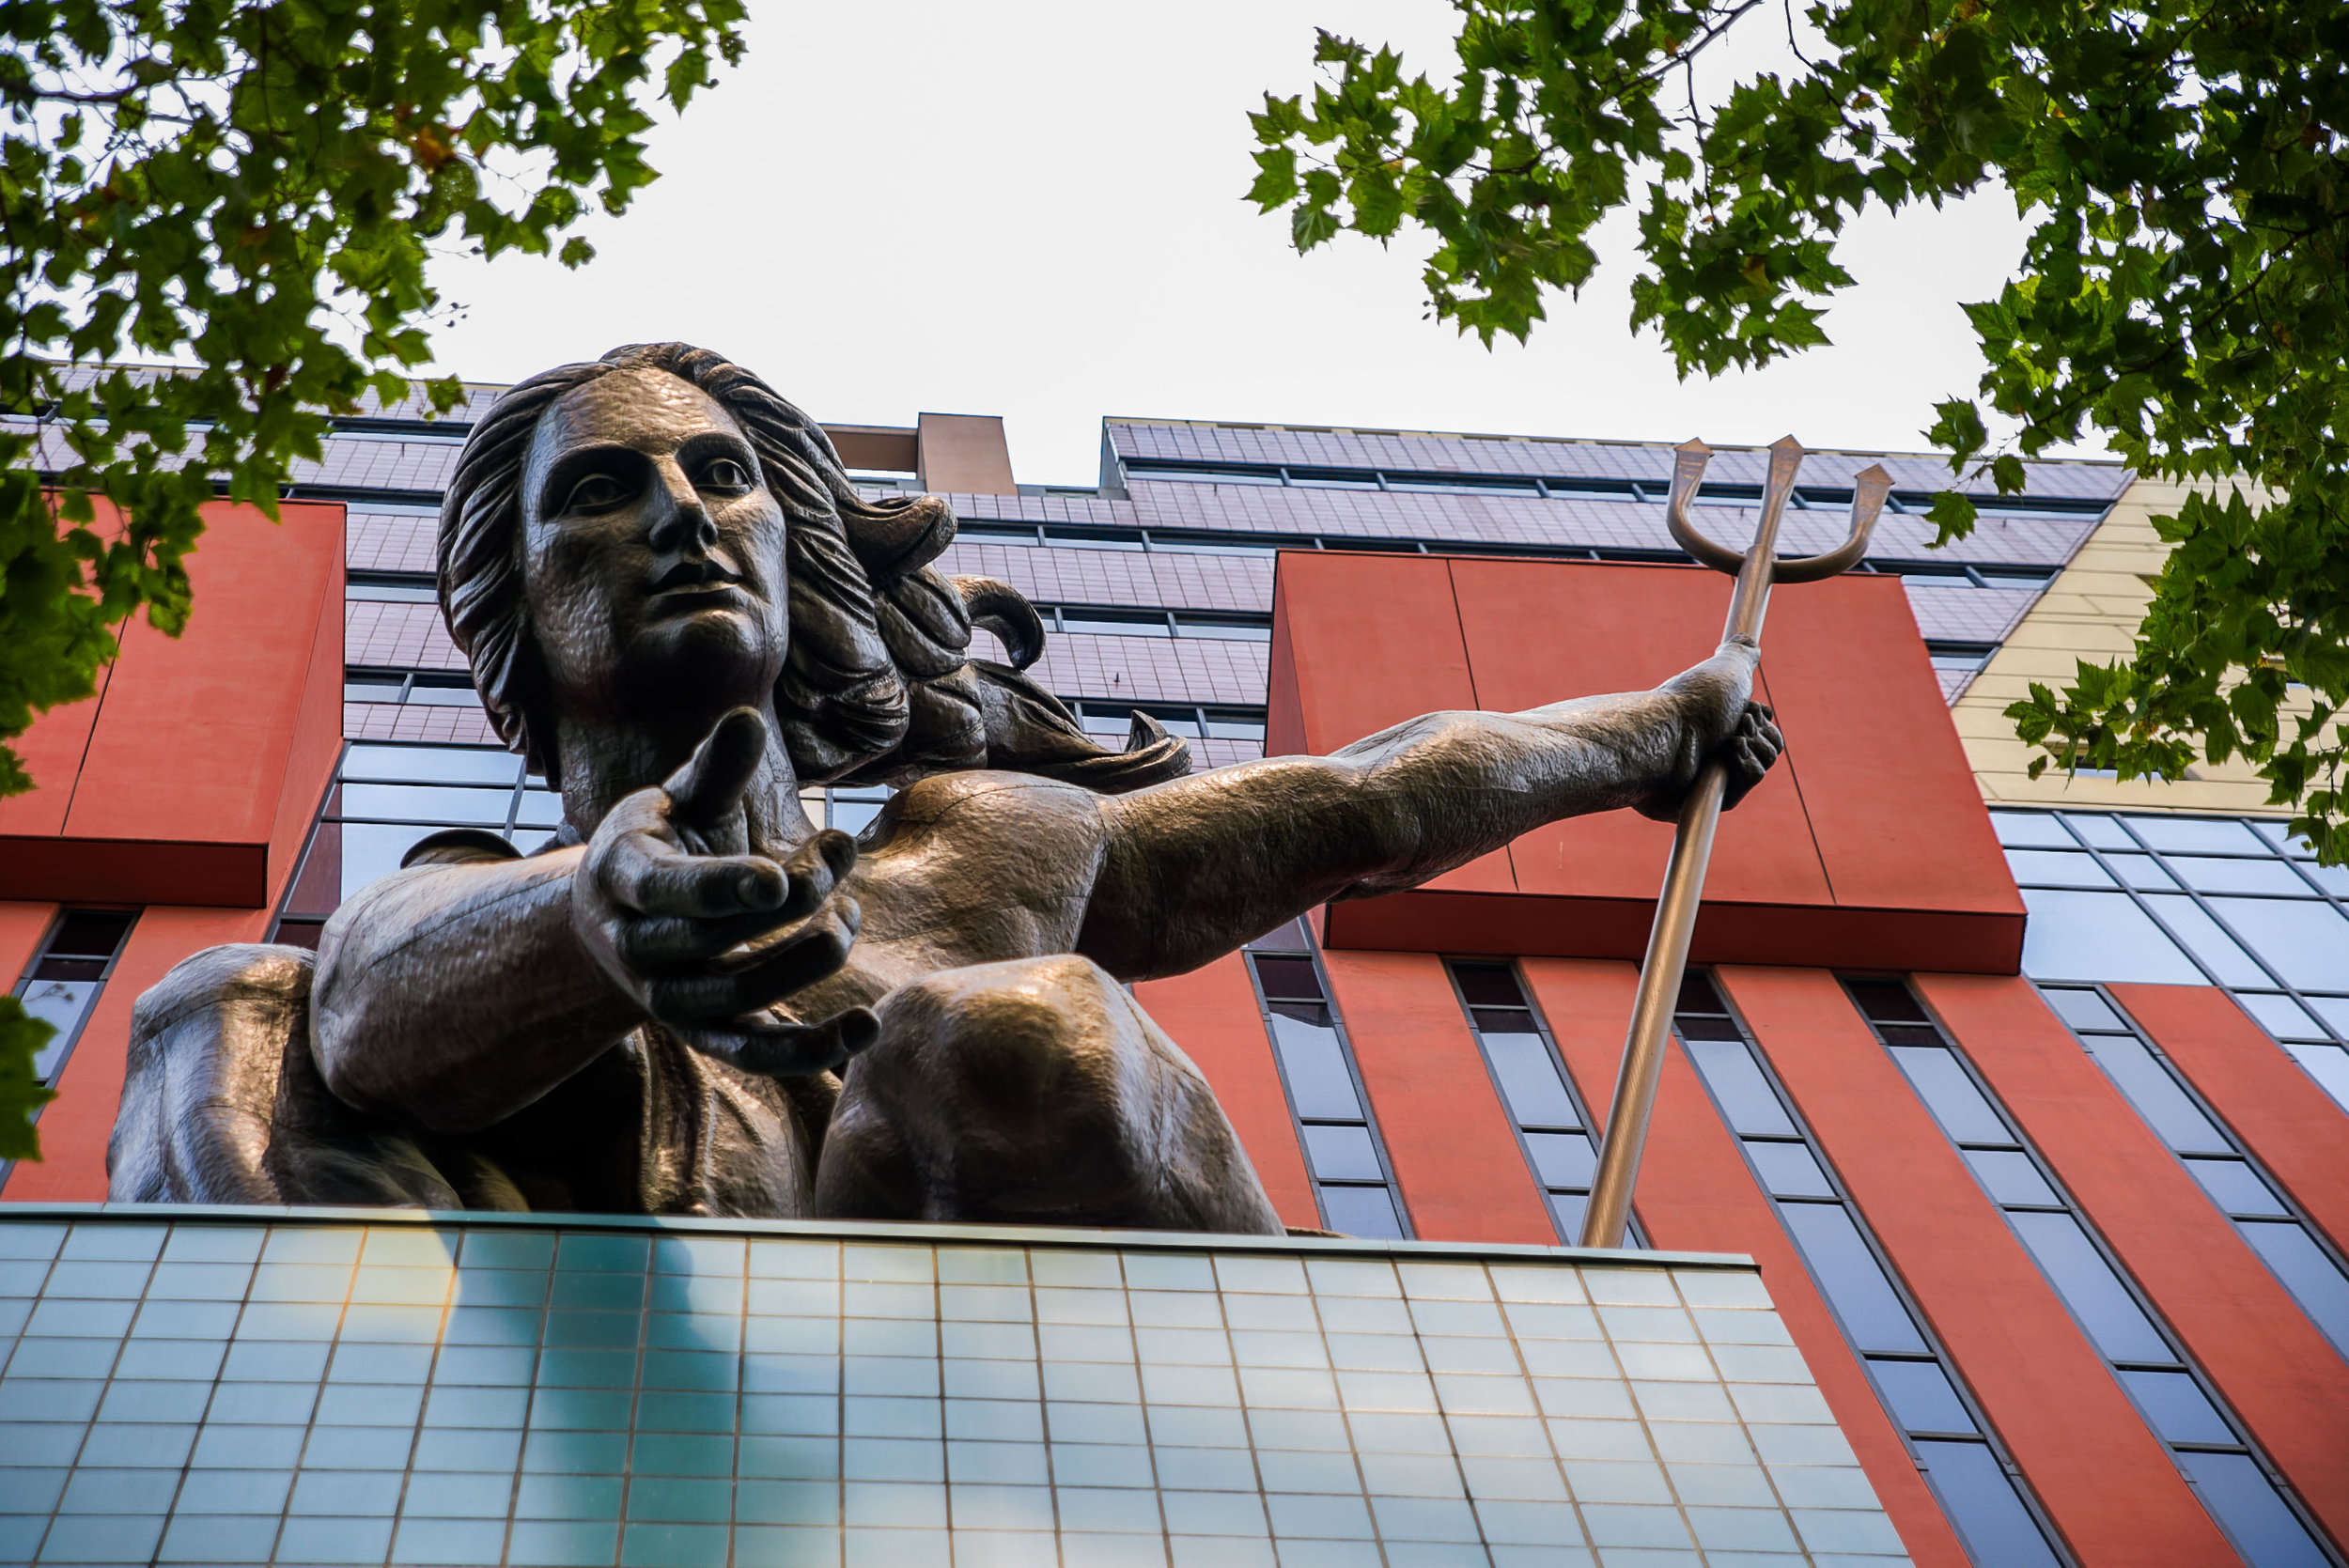 """The Statue """" Portlandia """" by Raymond Kaskey greets visitors to the Portland Municipal Building. ©2017 Images by Design"""